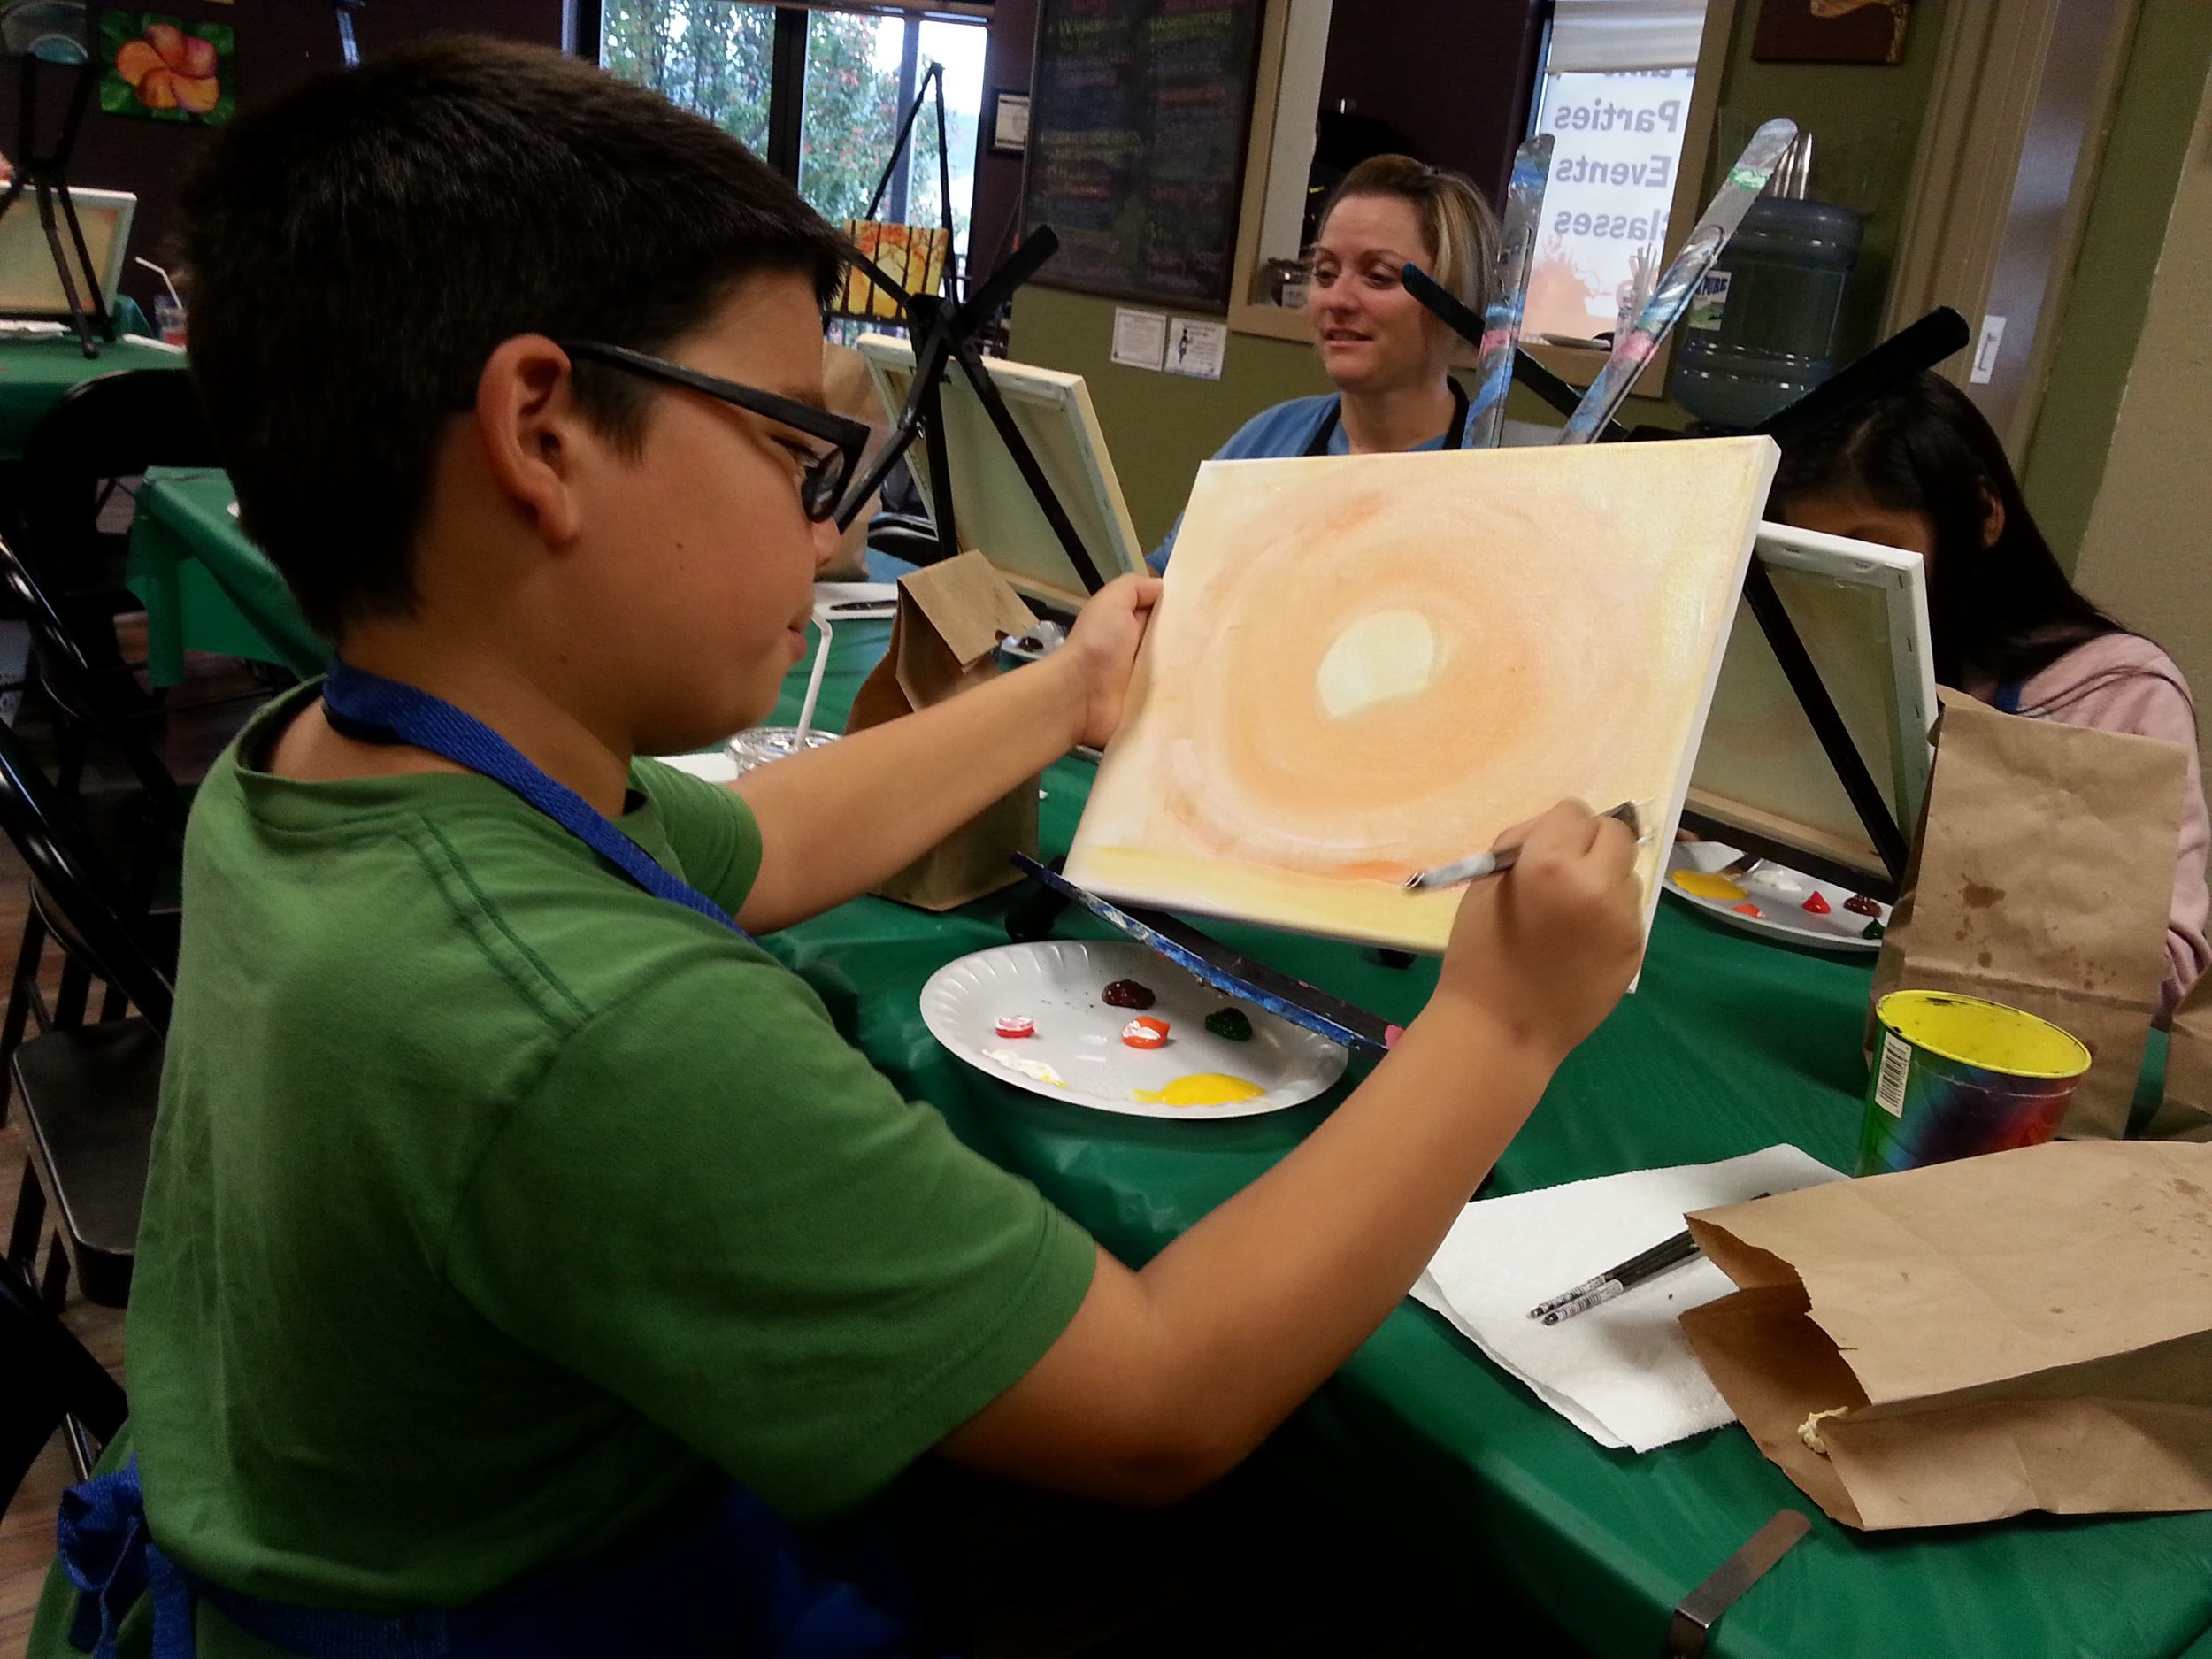 ART 4 JOY - Sip n' Paint - Central Point - What to do in Southern Oregon - Things to do - Events - Girls Night - Family - Kids (2).jpg